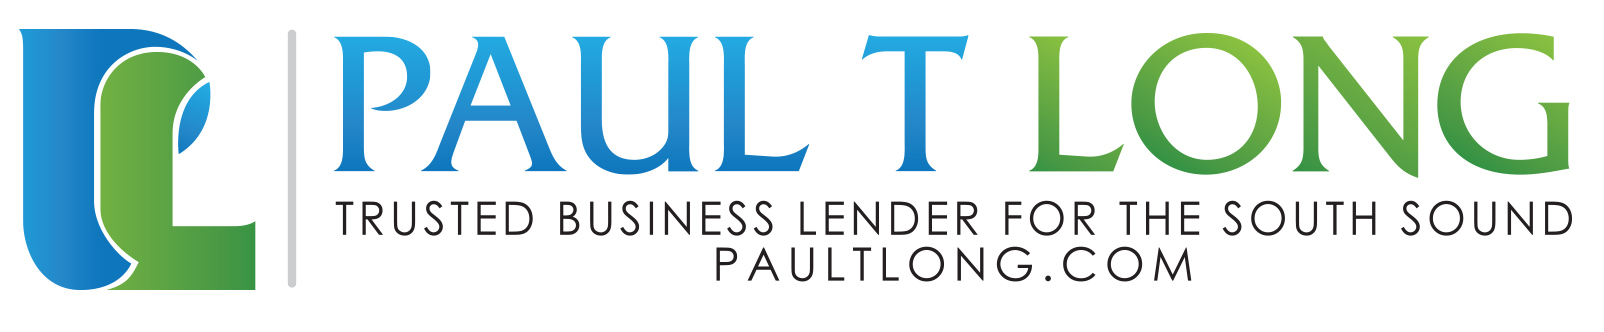 Trusted Business Lender for the South Sound